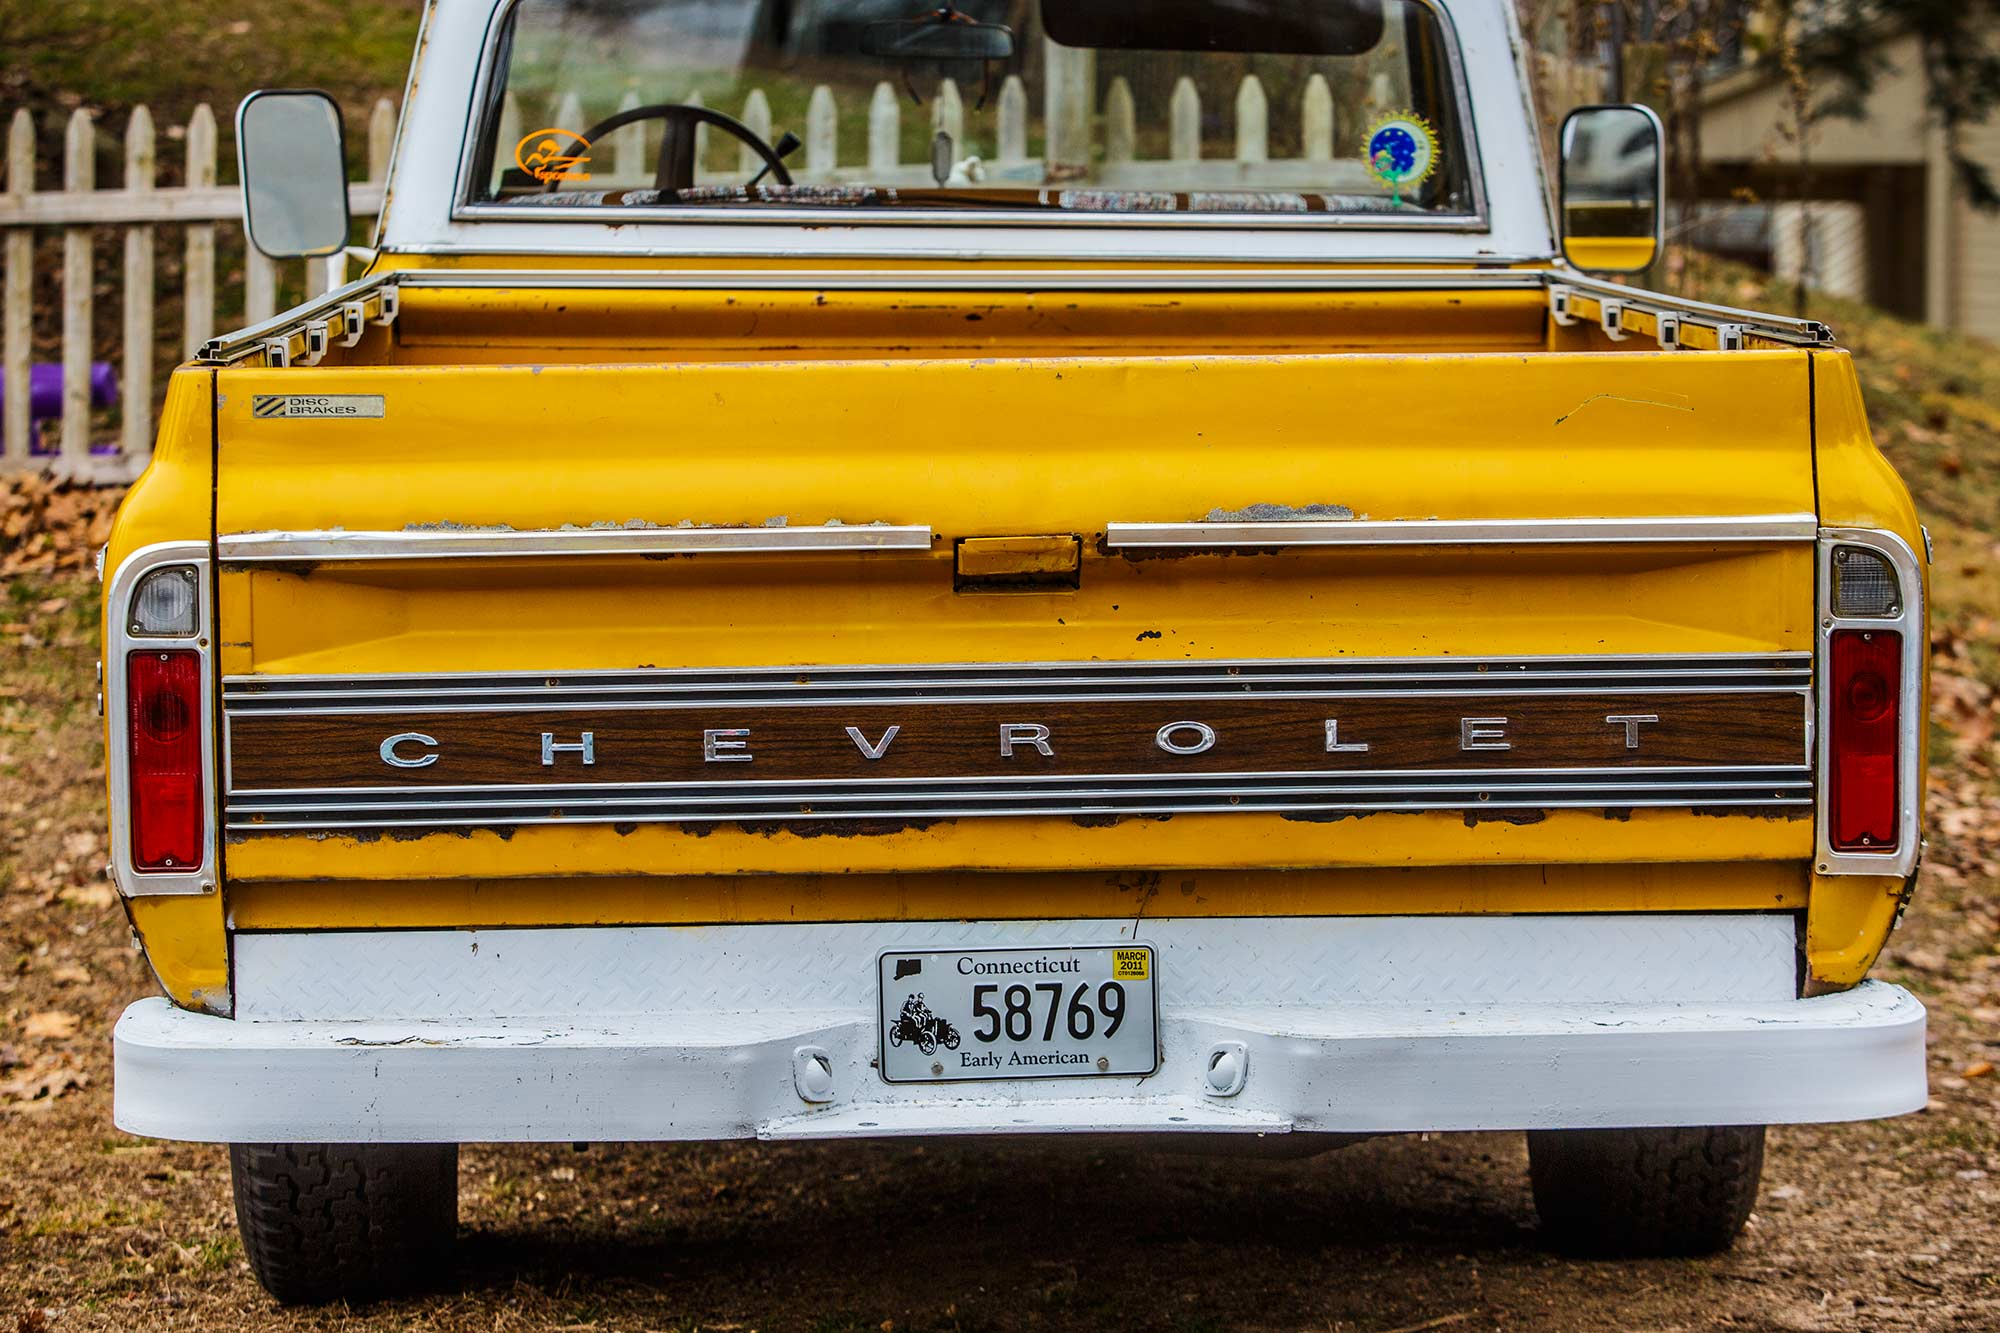 Old Chevy, Simsbury, CT - 1/22